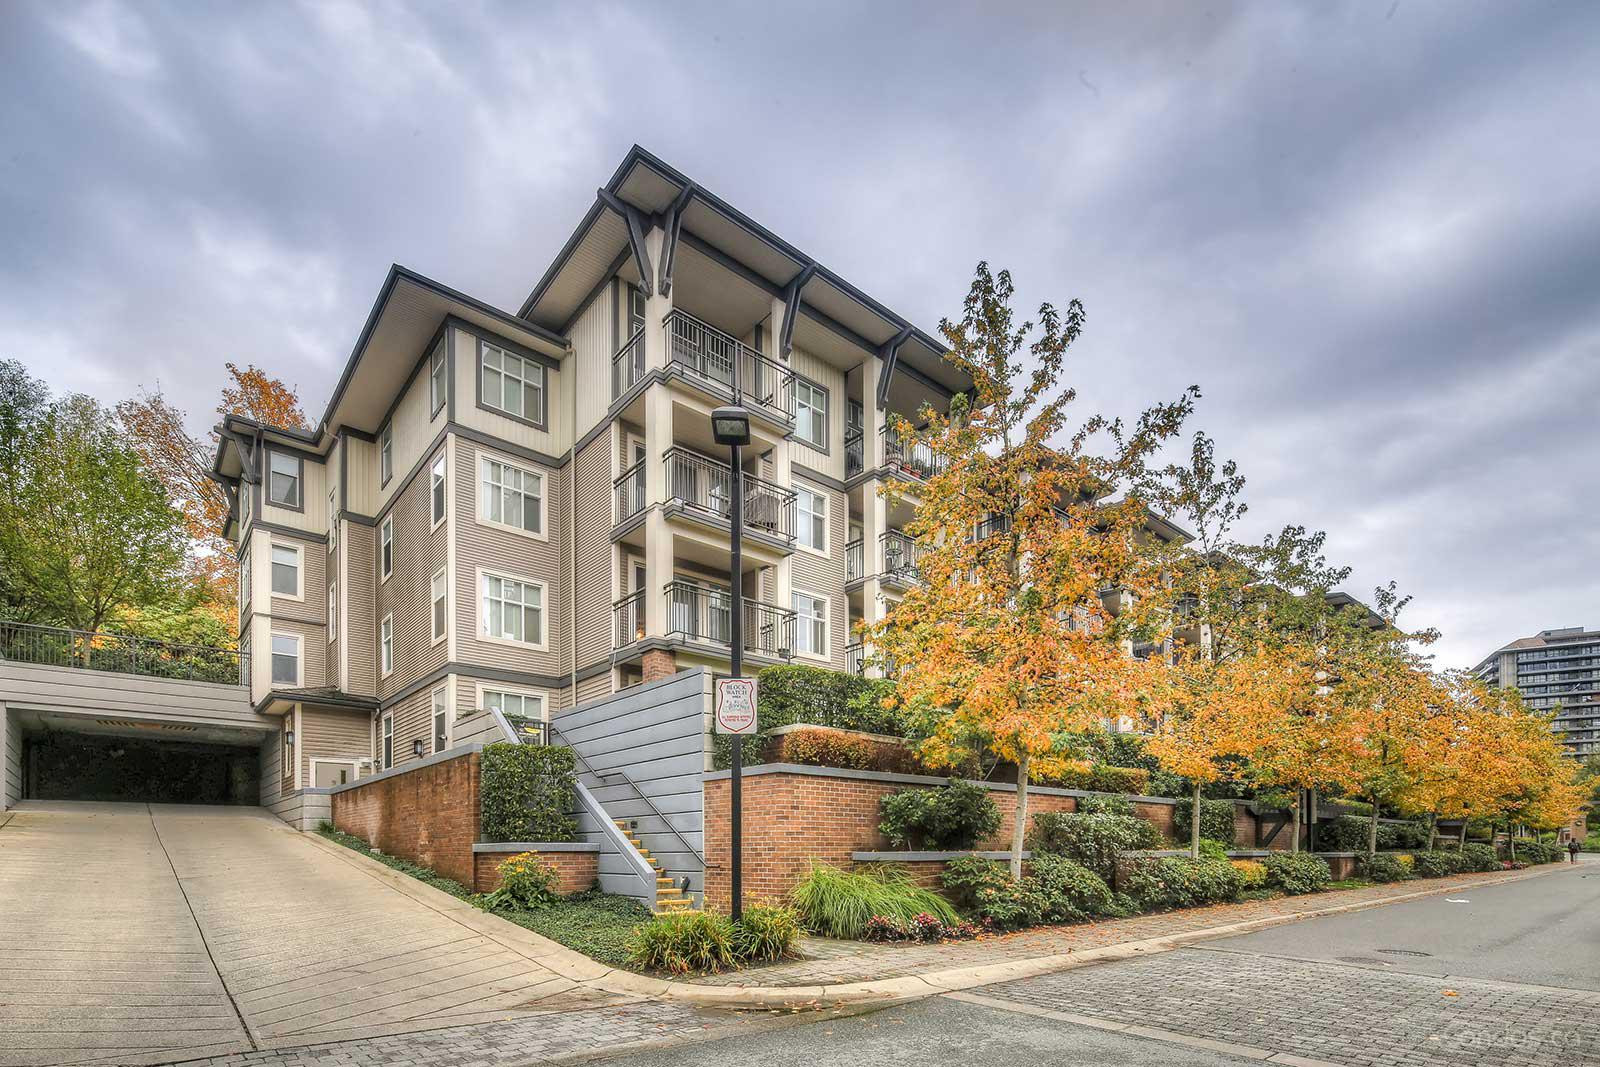 Macdonald House at 4833 Brentwood Dr, Burnaby 0